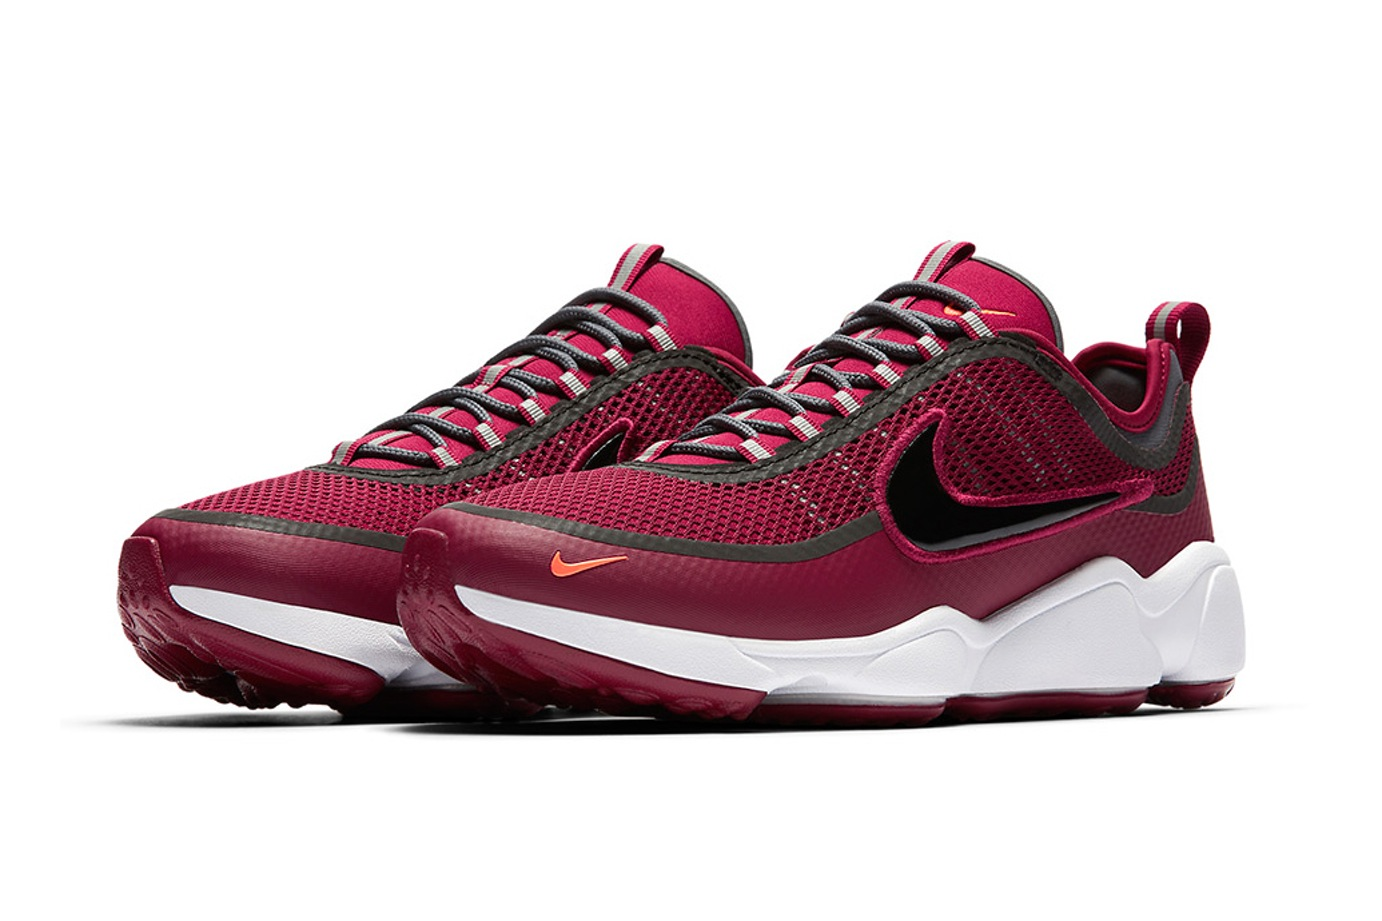 la nike zoom spiridon ultra obtient un sublime rouge trends periodical. Black Bedroom Furniture Sets. Home Design Ideas